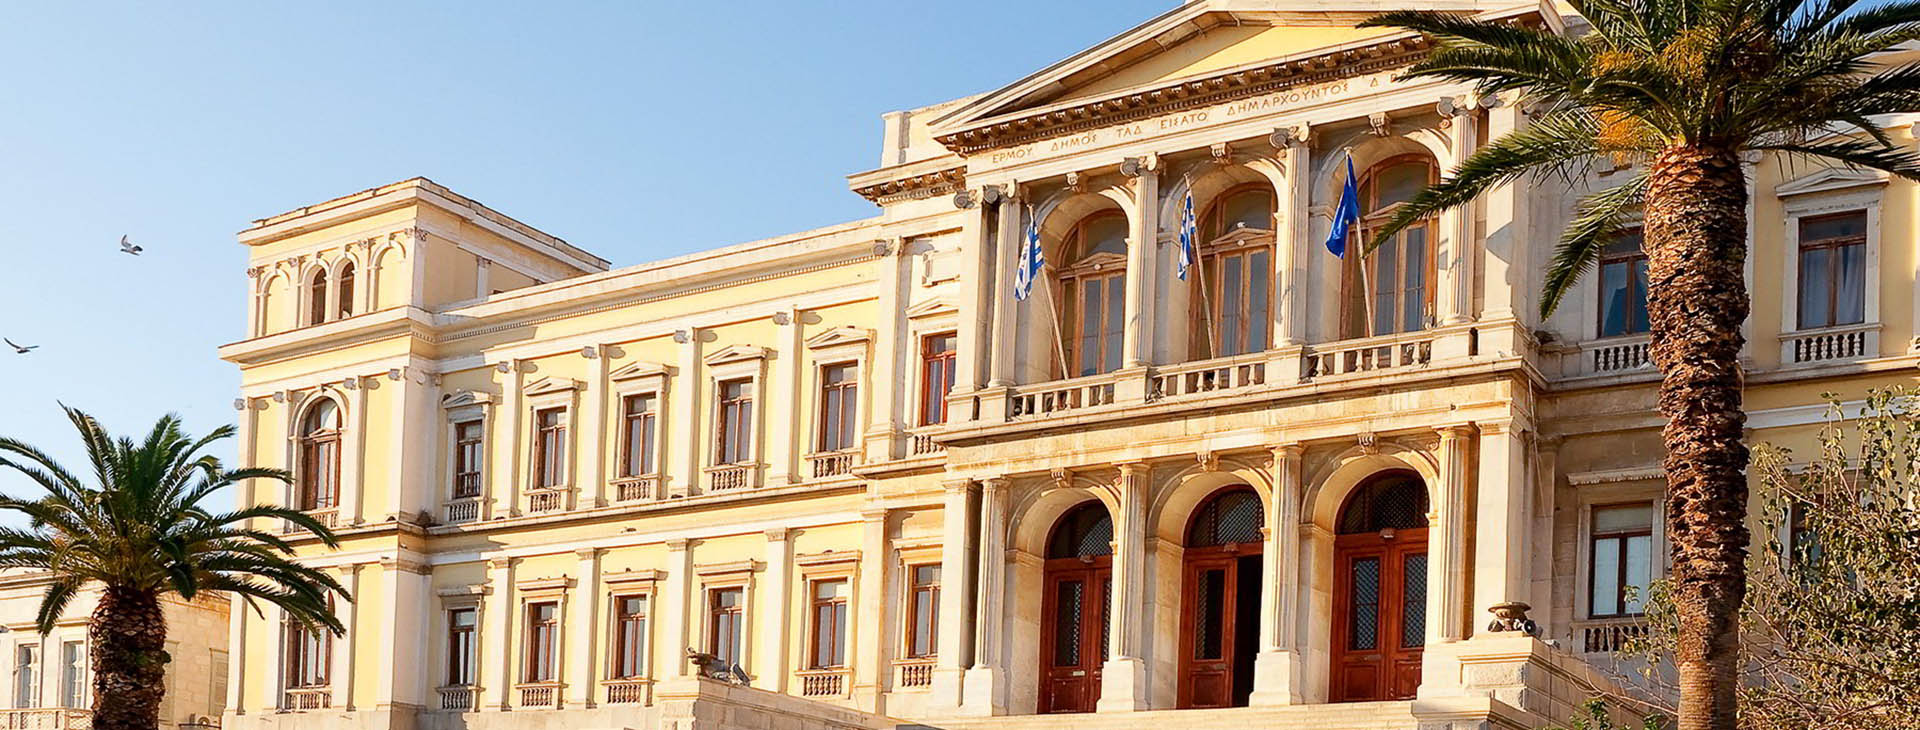 City Hall and the square, Syros island